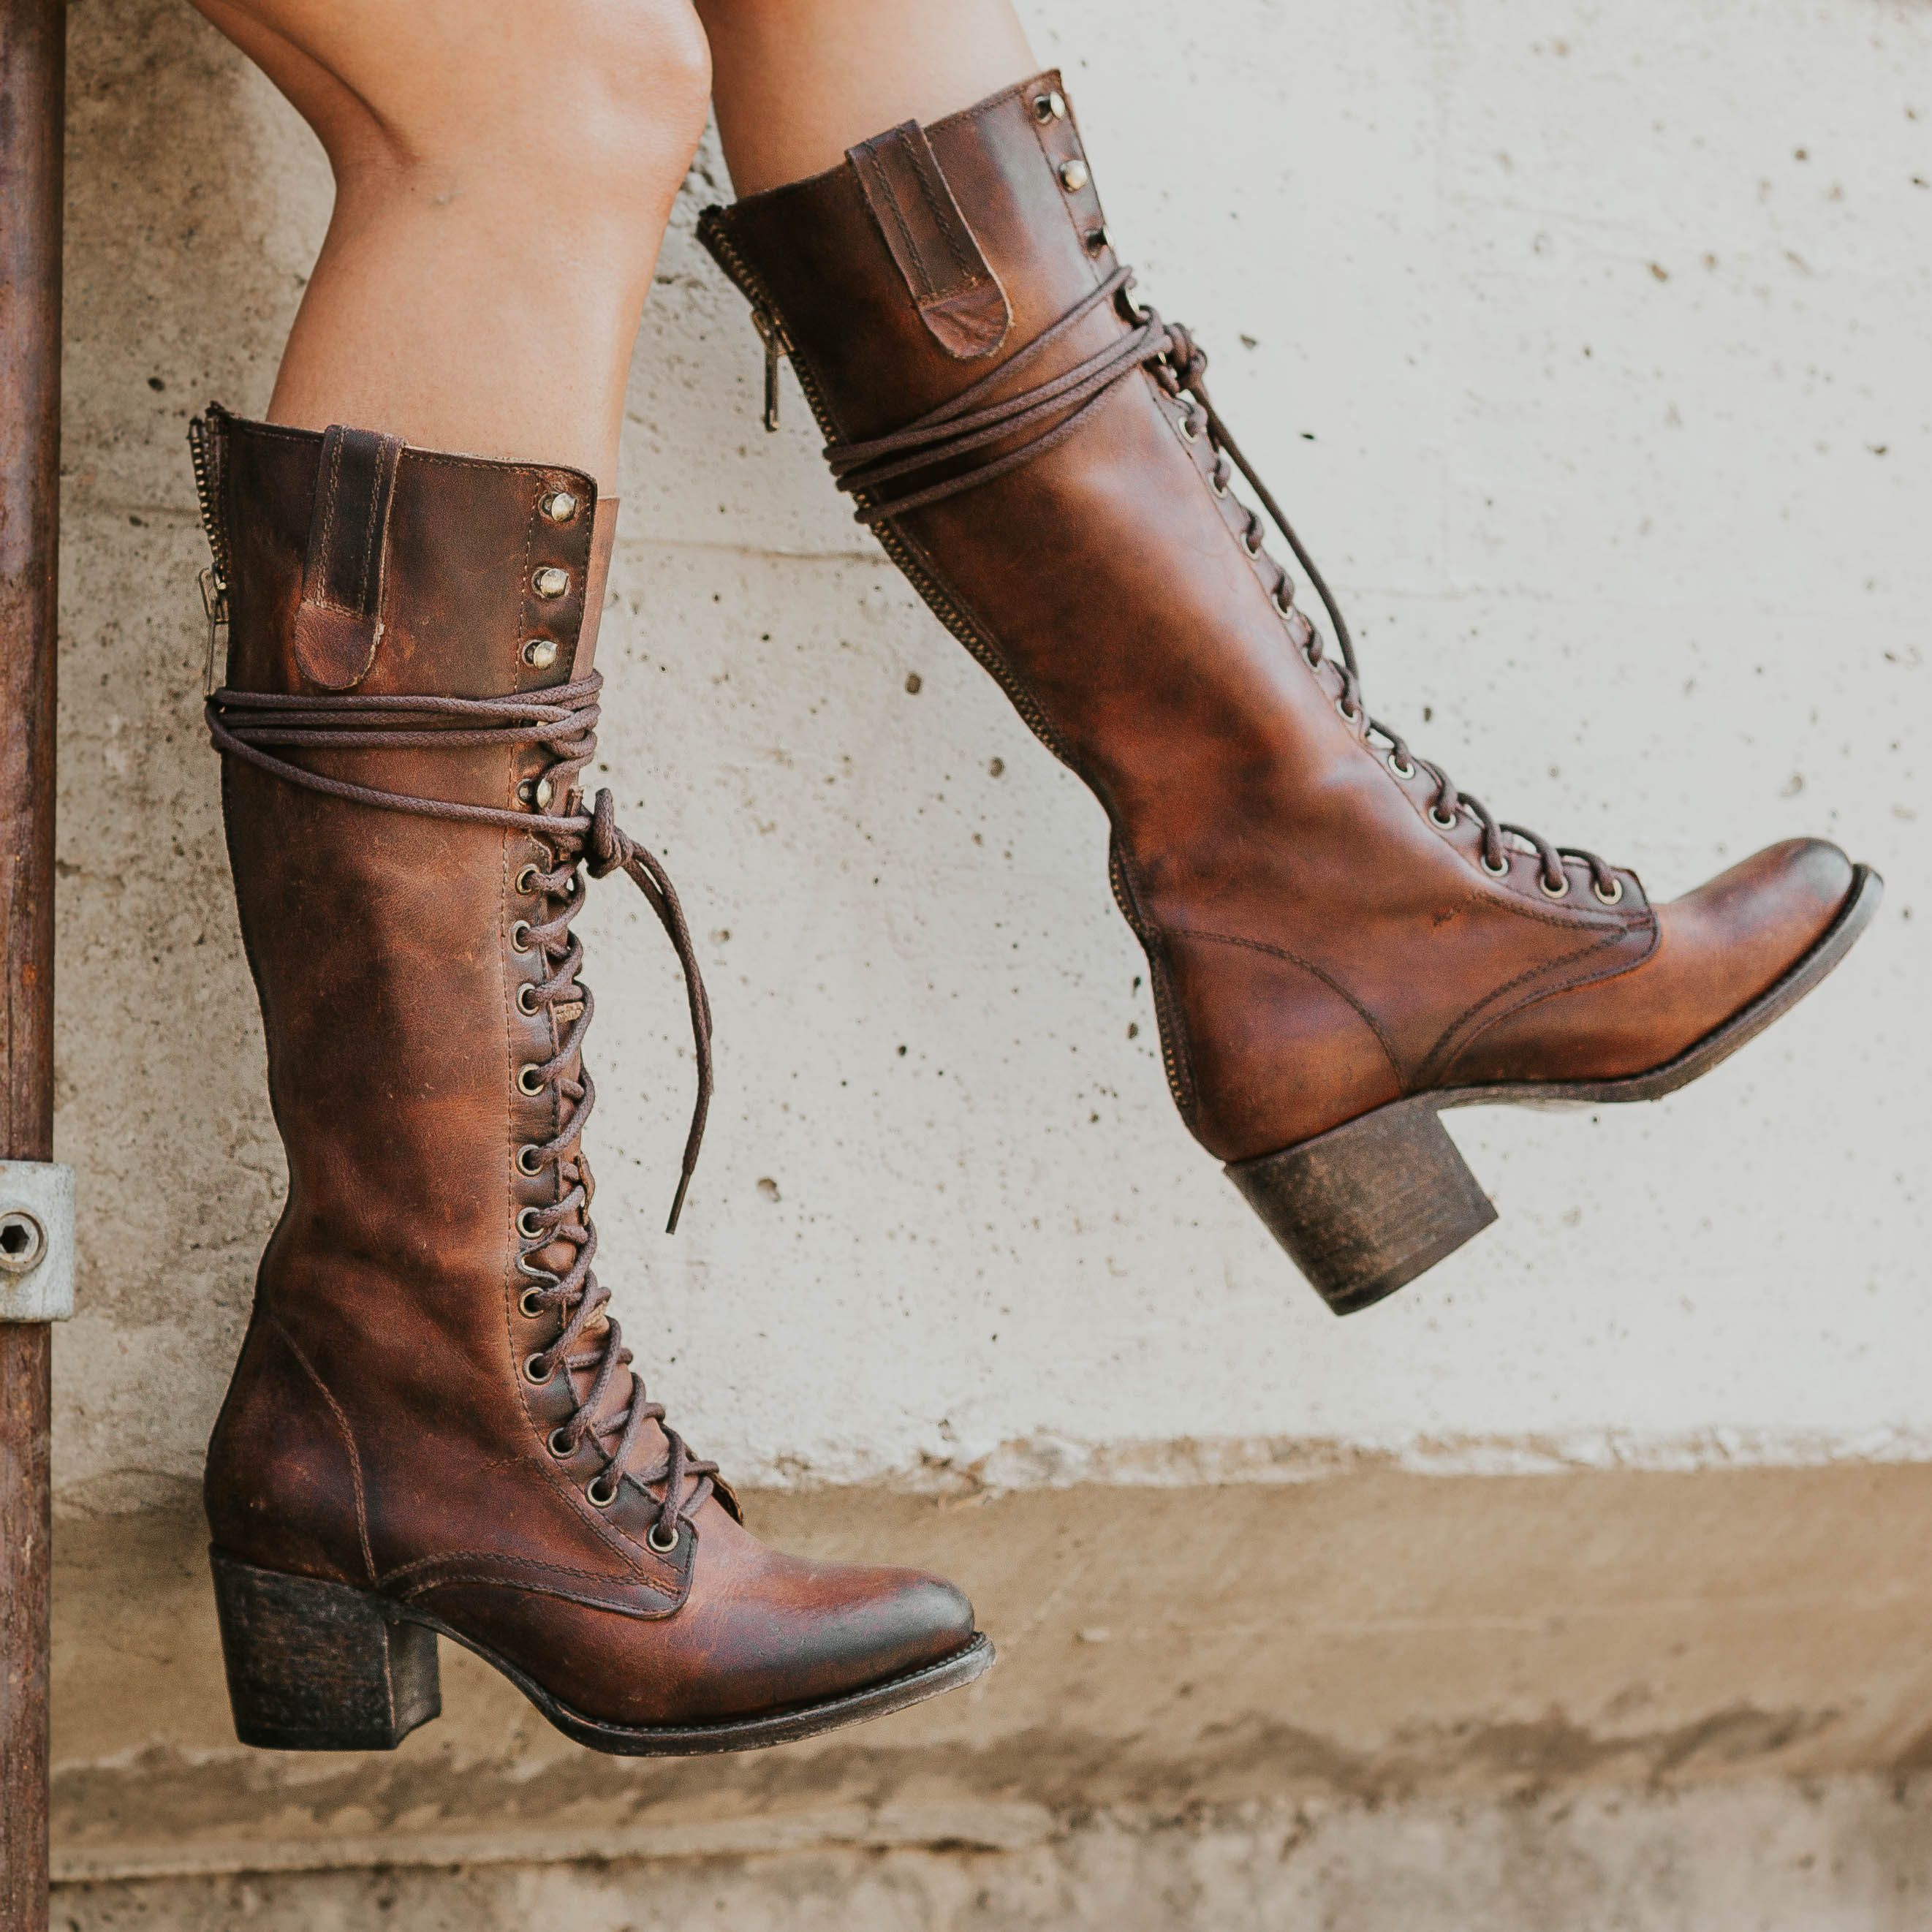 687f49912bb5c Grany in 2019 | Boots! | Fashion, Boots, Shoe boots